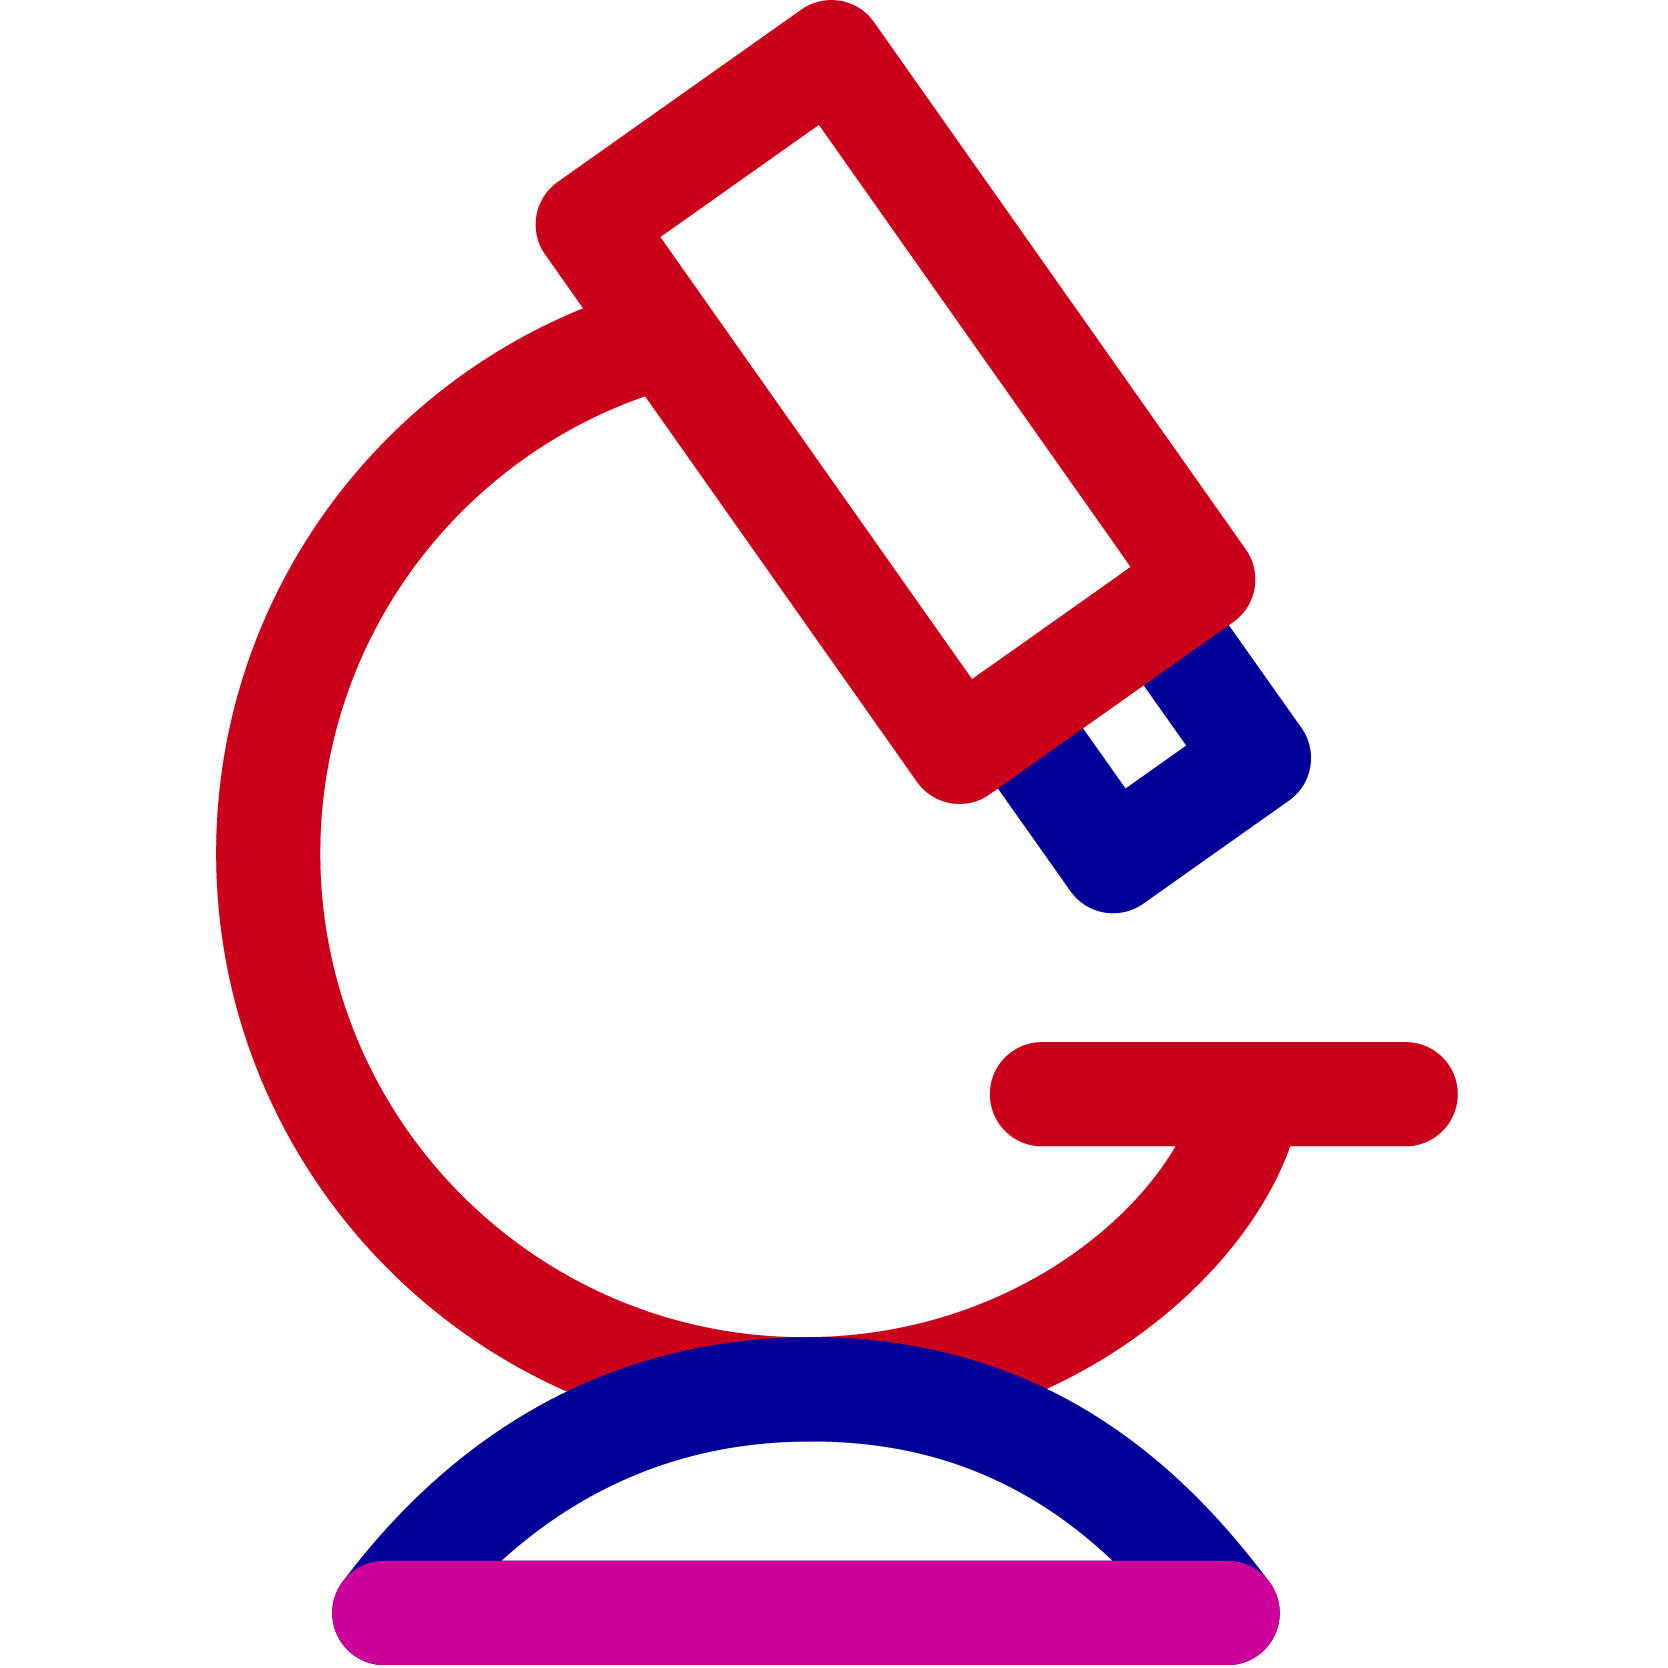 jj-icon-science-microscope-multi-rgb-png-hhrrgbresearchdevelopment.png